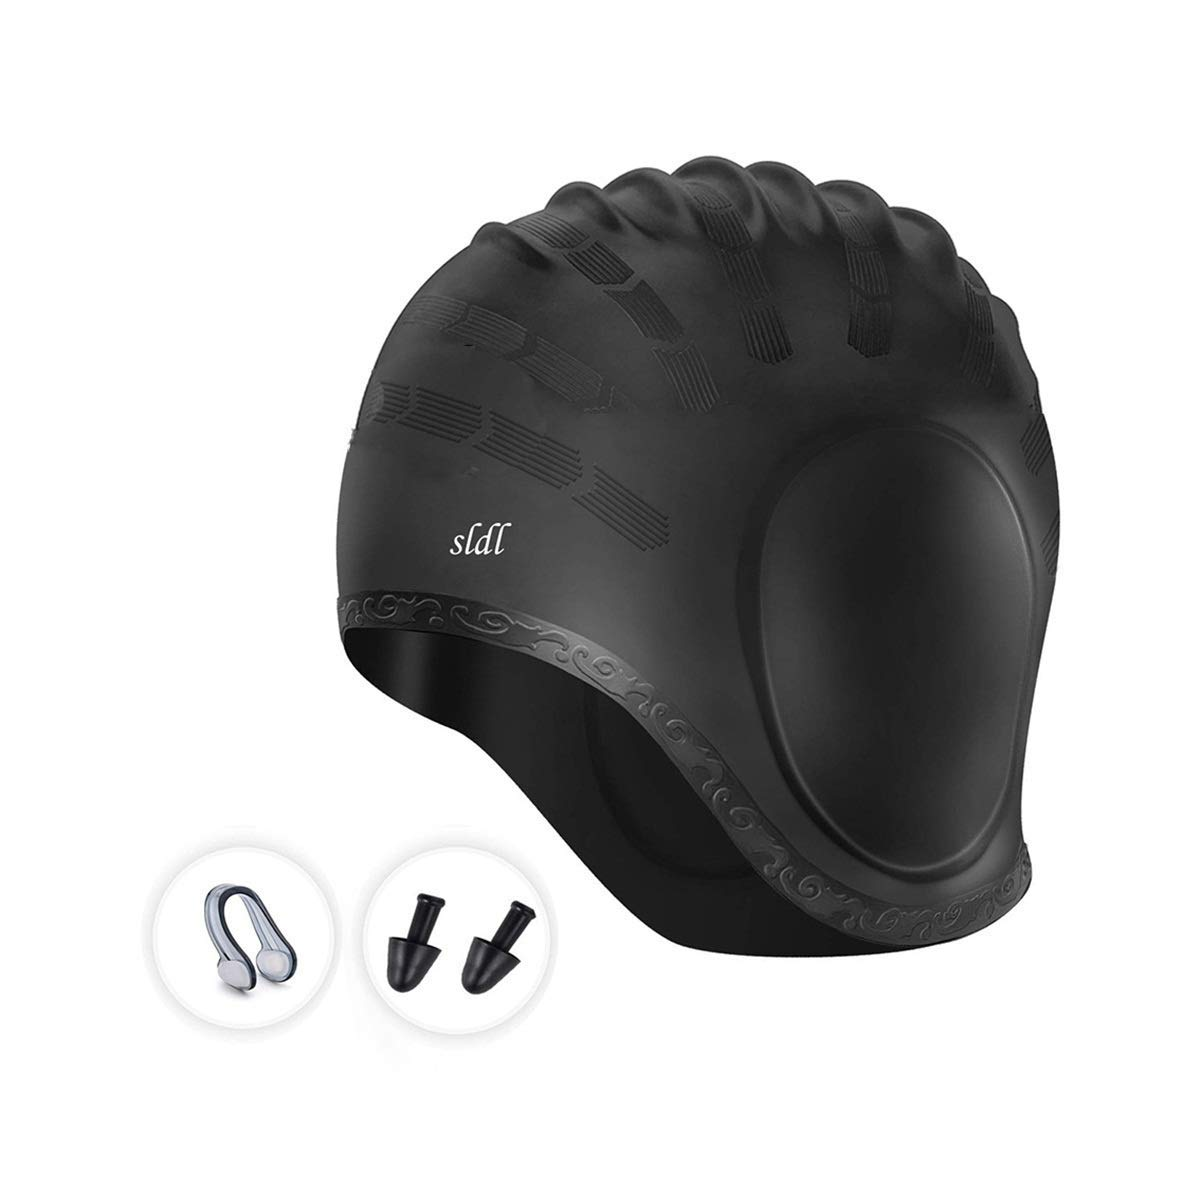 Swim Cap, Waterproof Silicone Bathing Solid Swimming Cap with 3D Ergonomic Ear Pockets,No-Slip,High Elasticity & No Deformation Swim Hat with Nose Clips,Earplugs for Long Short Hair Women Men (Black)